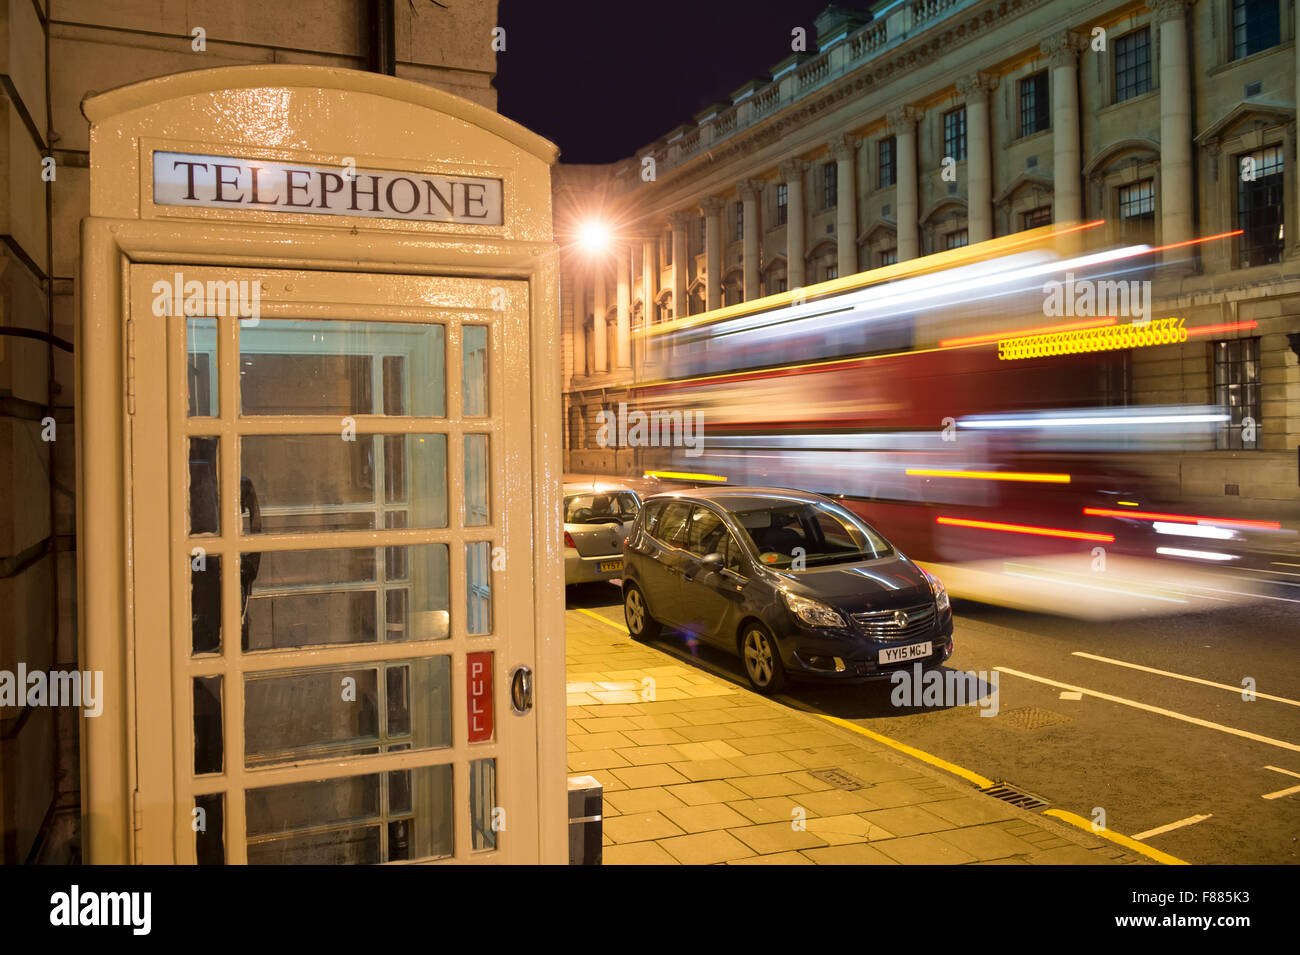 A cream KC Telephone box lit up at night in Hull, East Yorkshire. - Stock Image